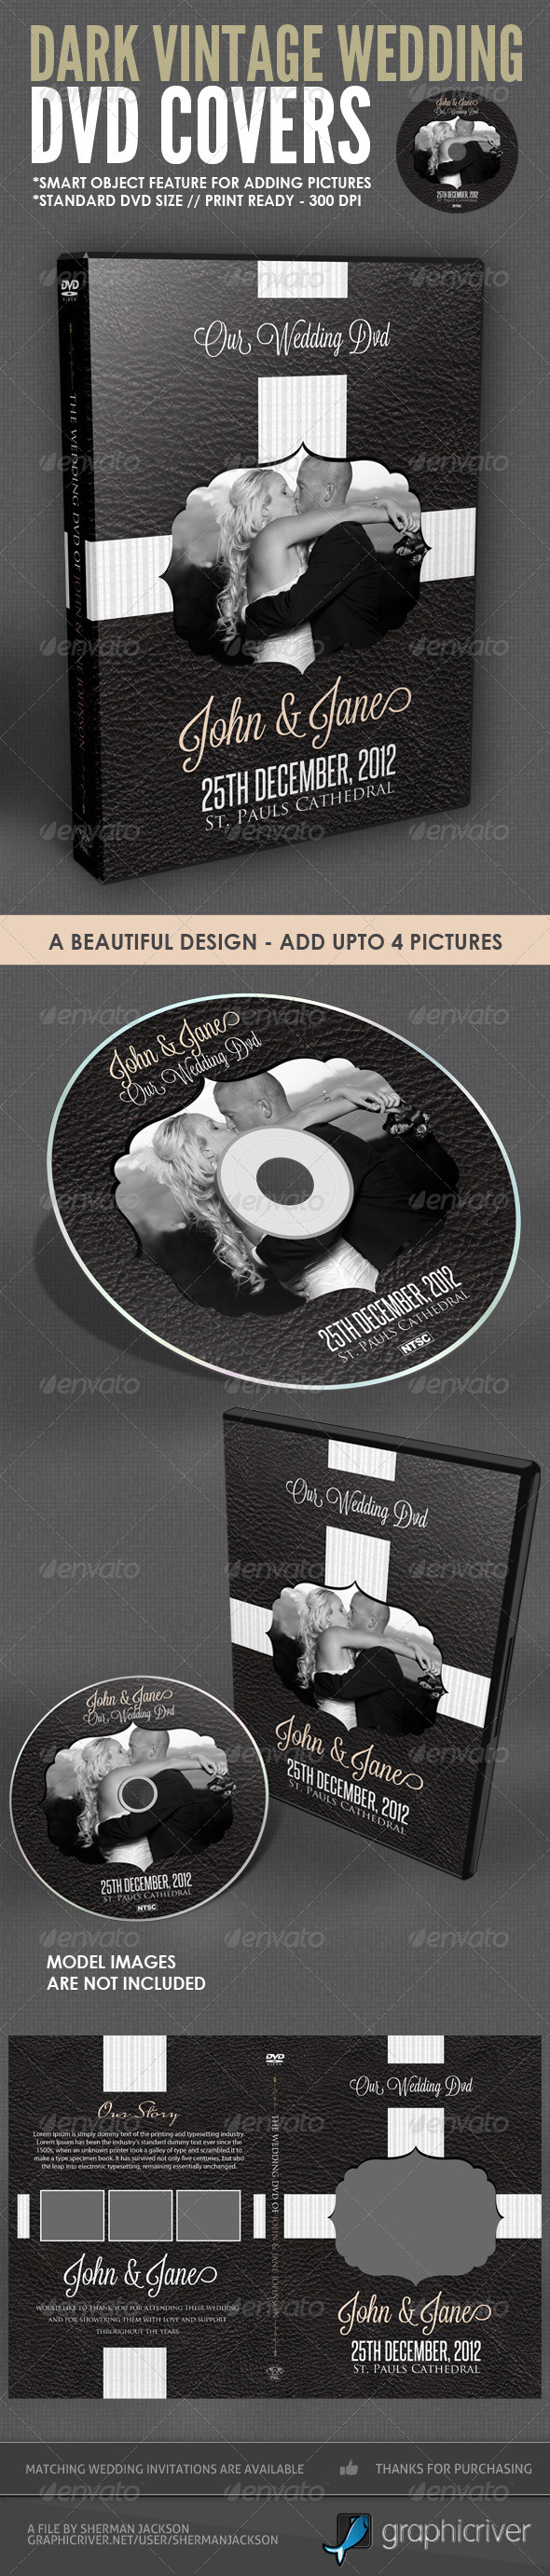 Dark Vintage Wedding DVD Cover Template - CD &amp; DVD artwork Print Templates